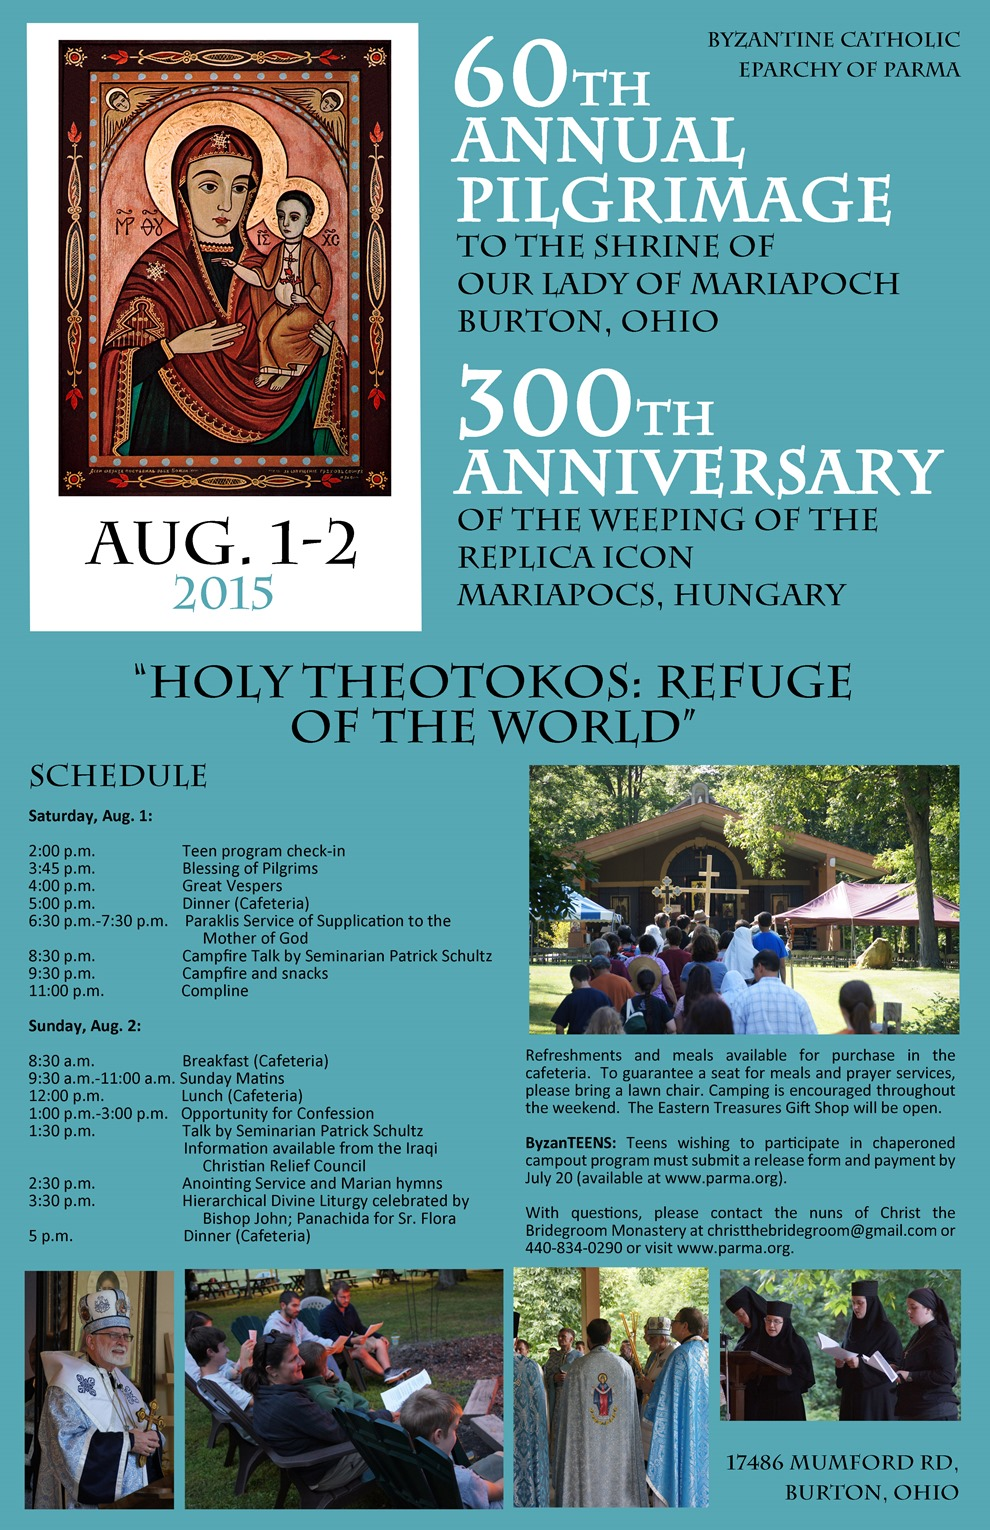 60th Annual Pilgrimage